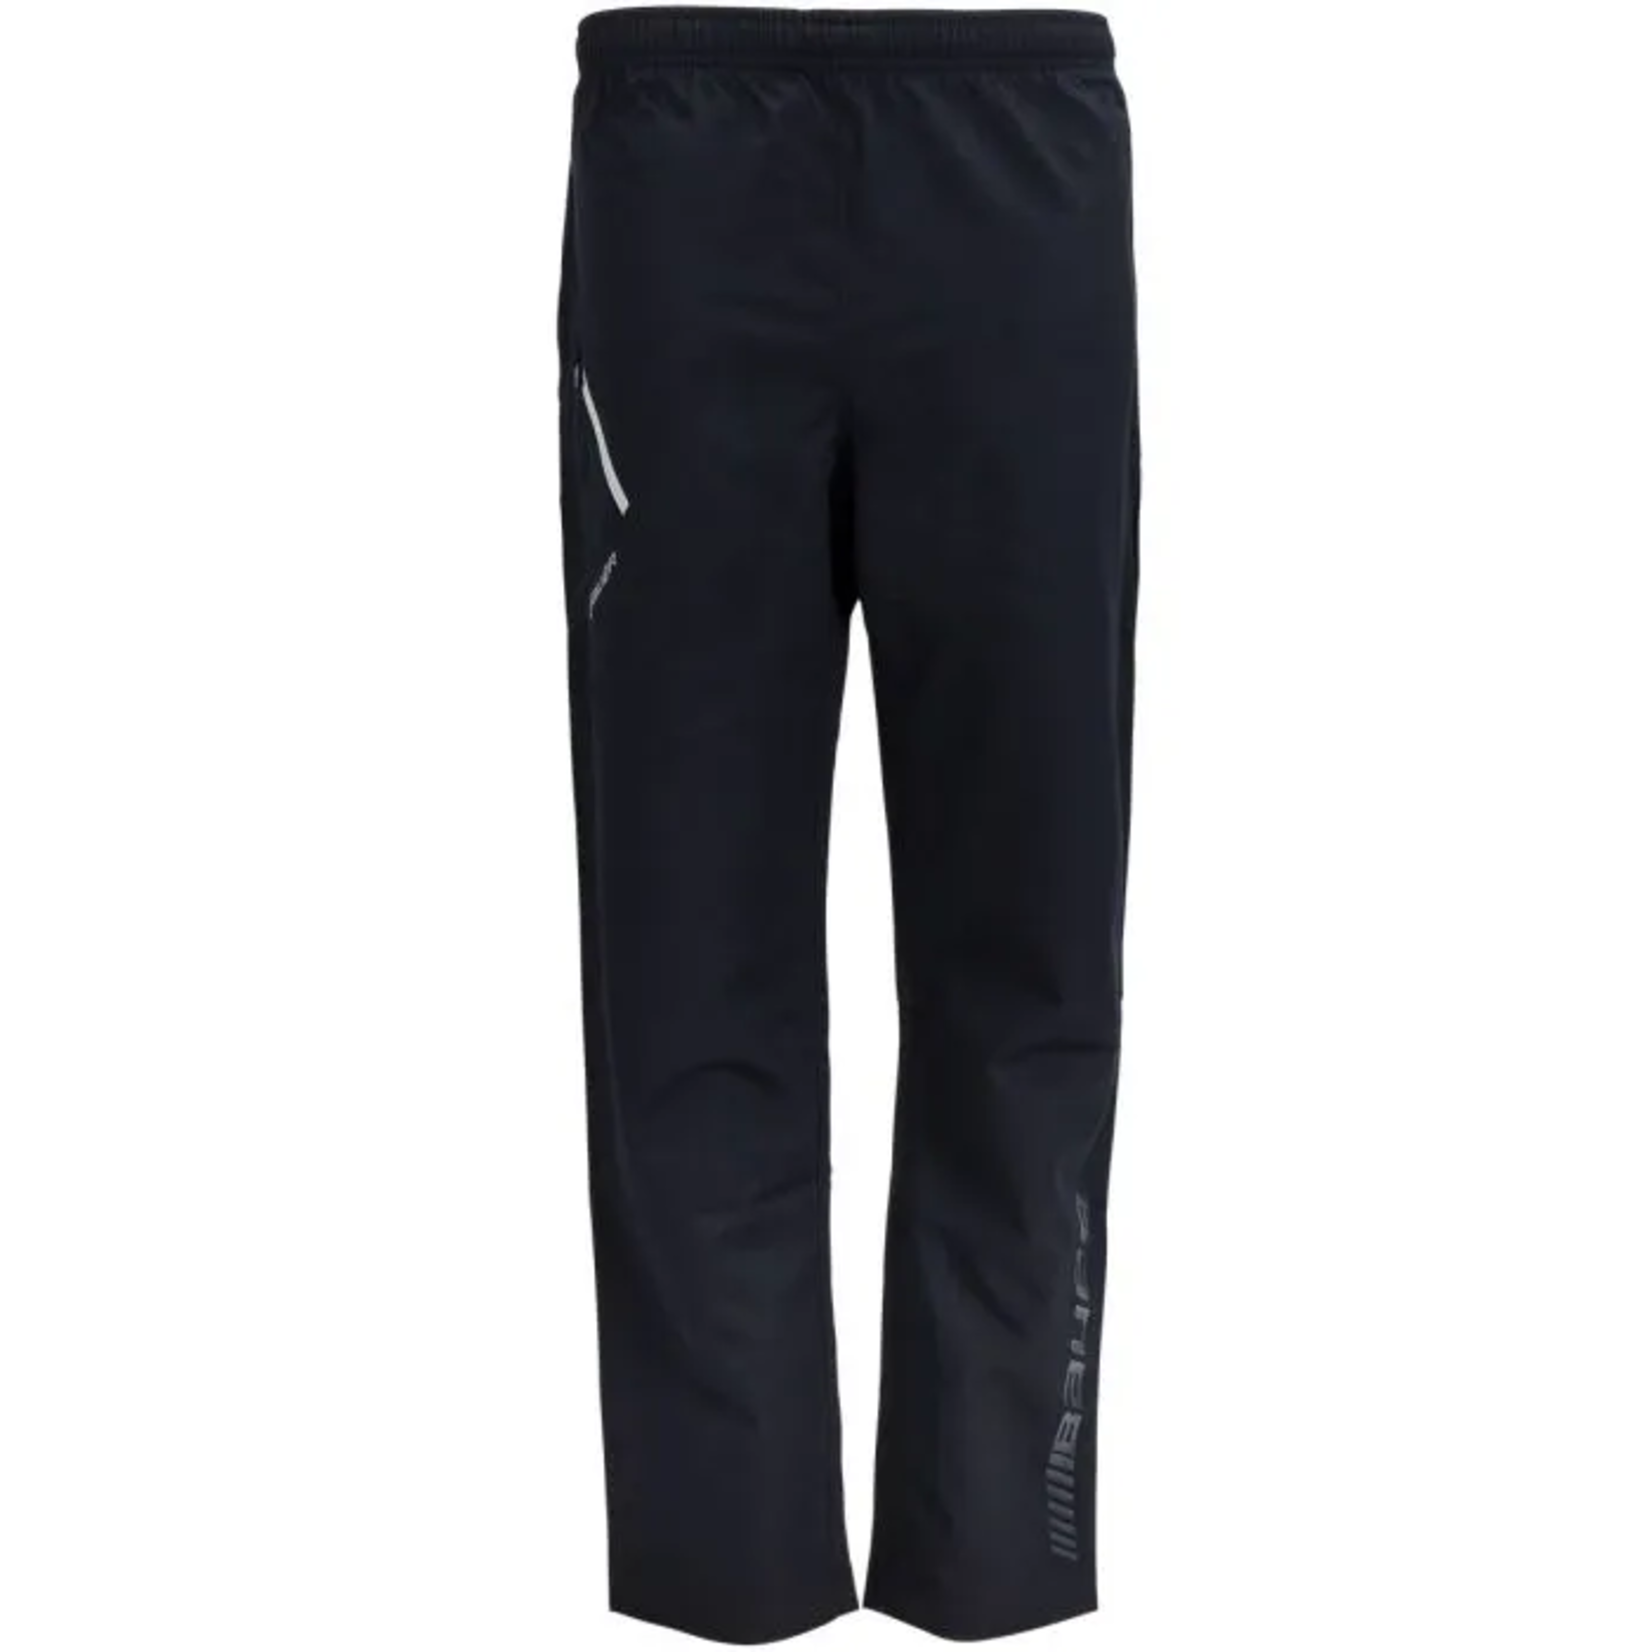 BAUER Bauer Hawks Lightweight Pant - Youth